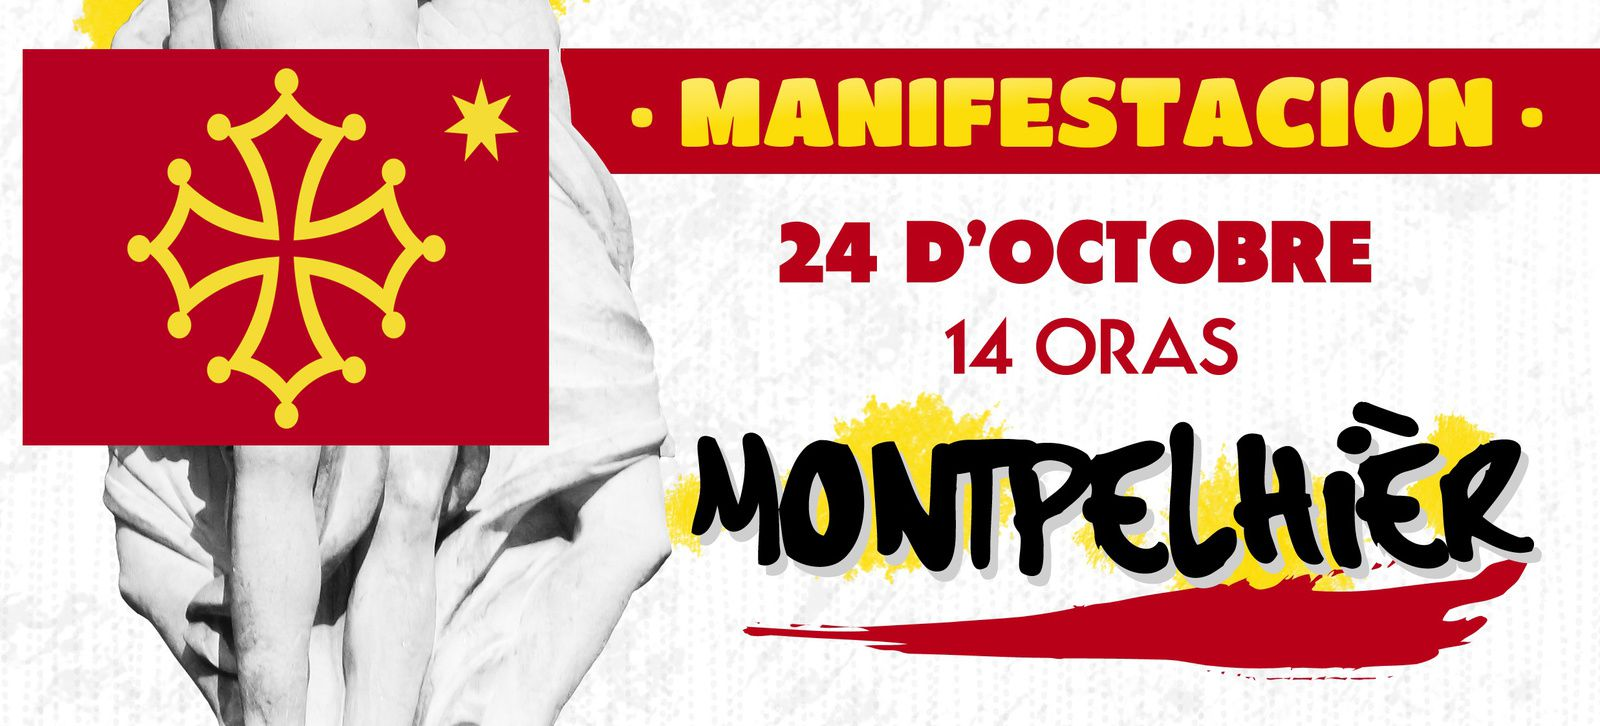 Langue occitane, Montpellier, manifestation le 24 octobre.